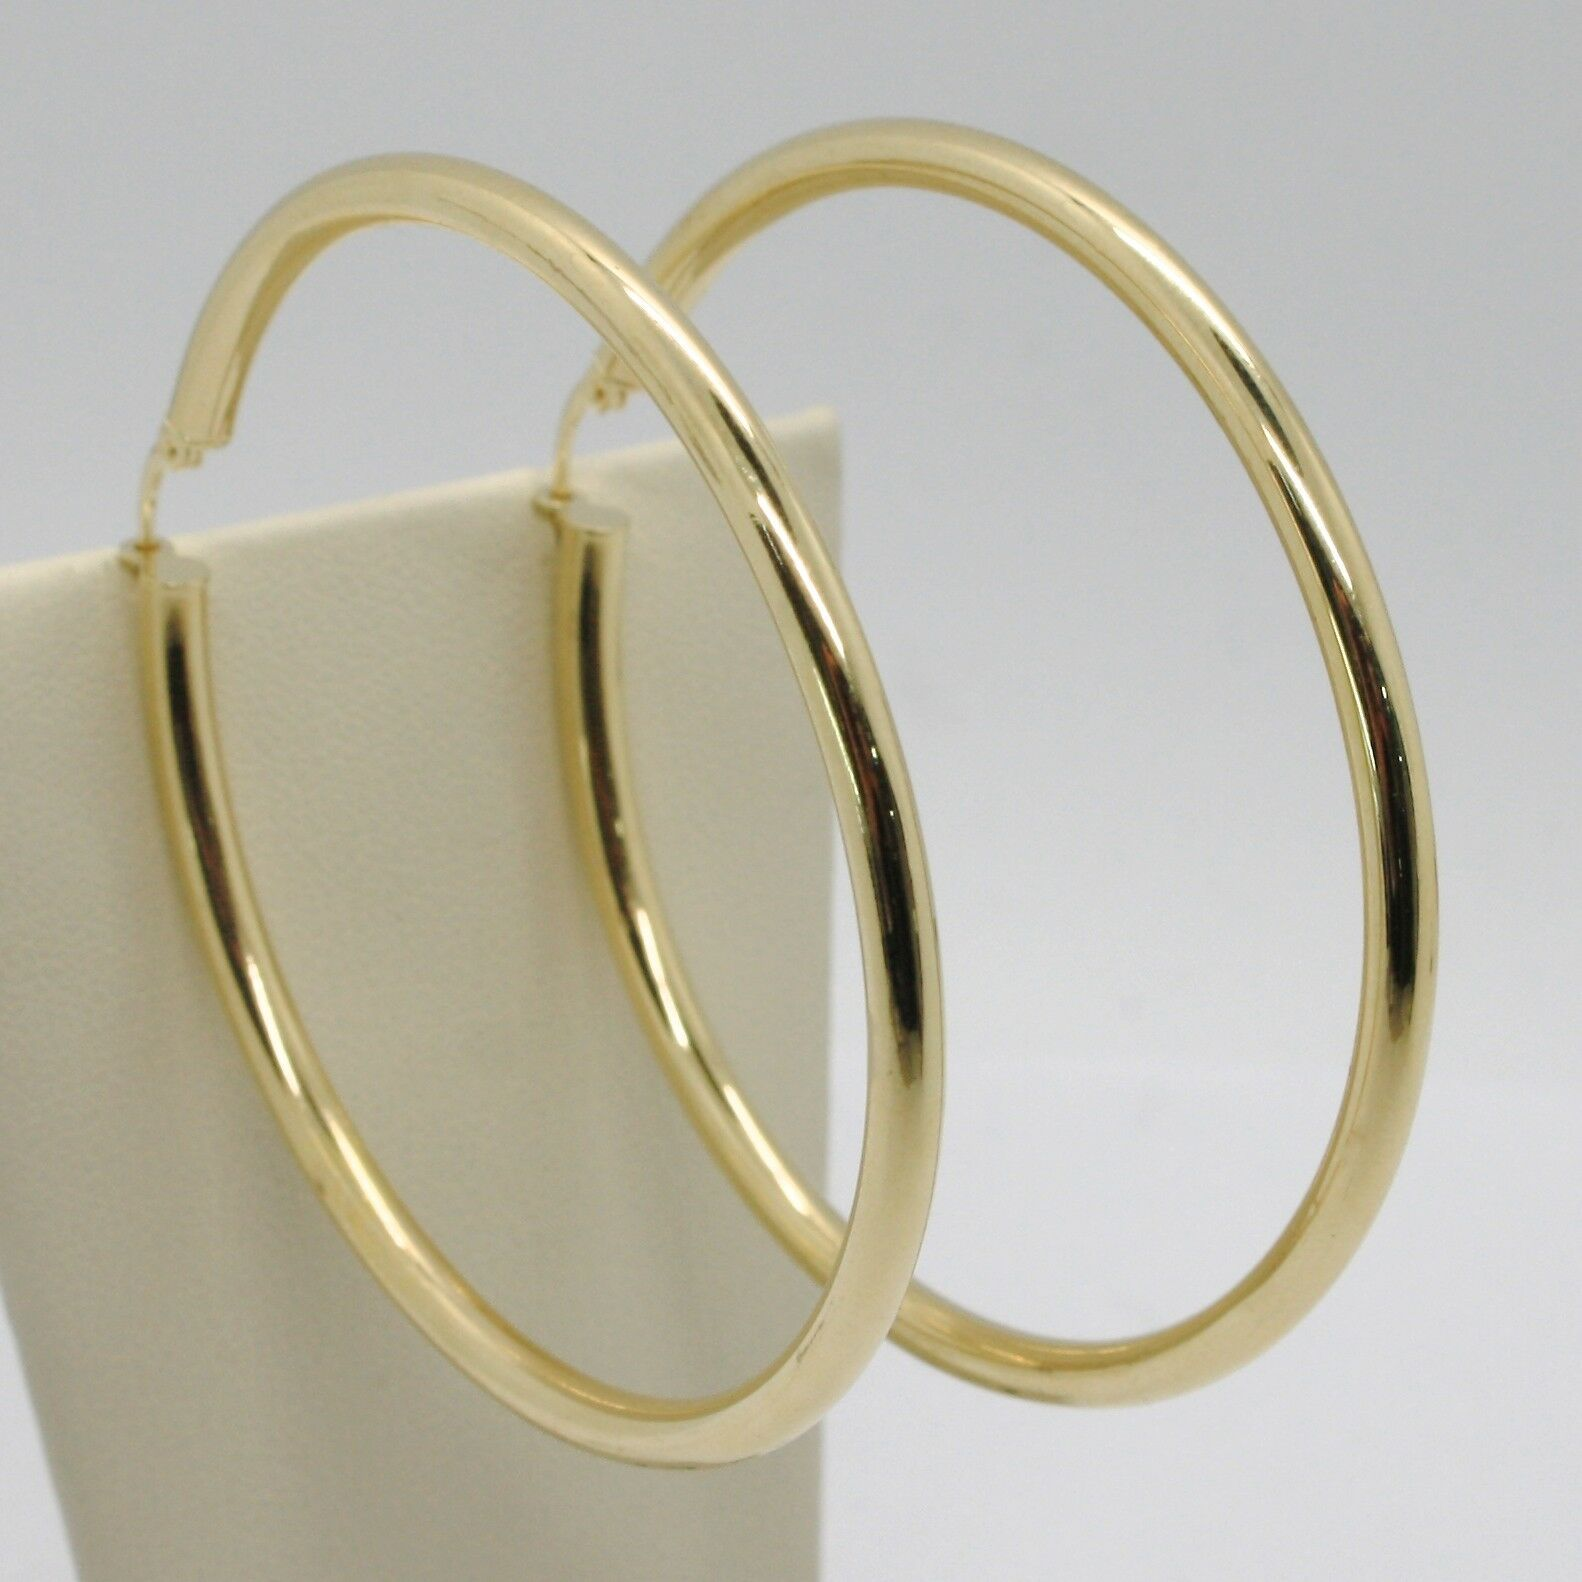 18K YELLOW GOLD ROUND CIRCLE EARRINGS DIAMETER 60 MM, WIDTH 3 MM, MADE IN ITALY